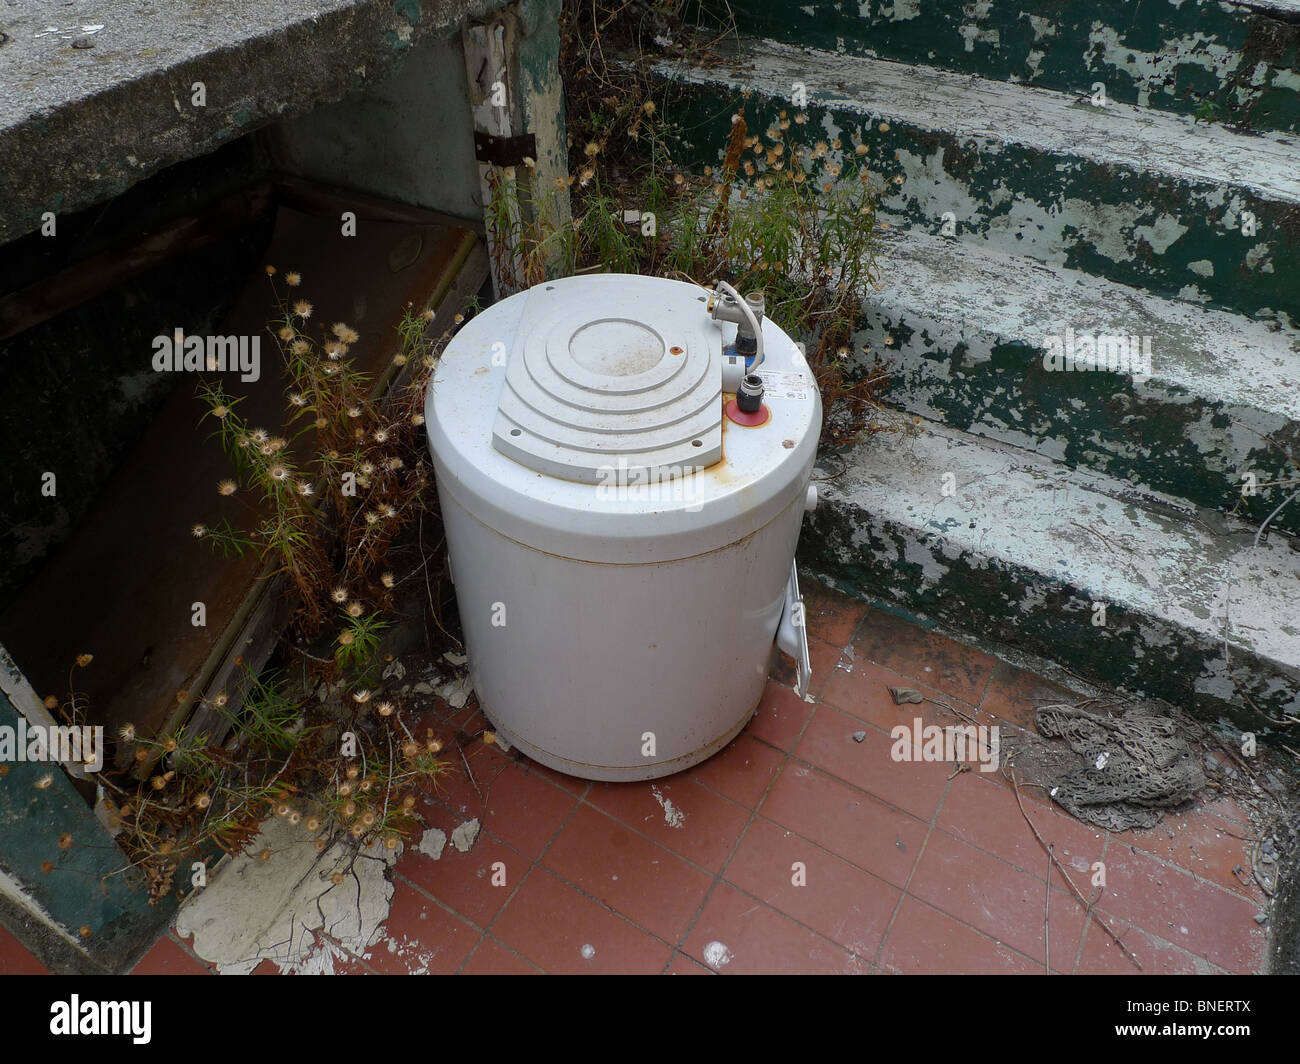 House Boiler Stockfotos & House Boiler Bilder - Alamy